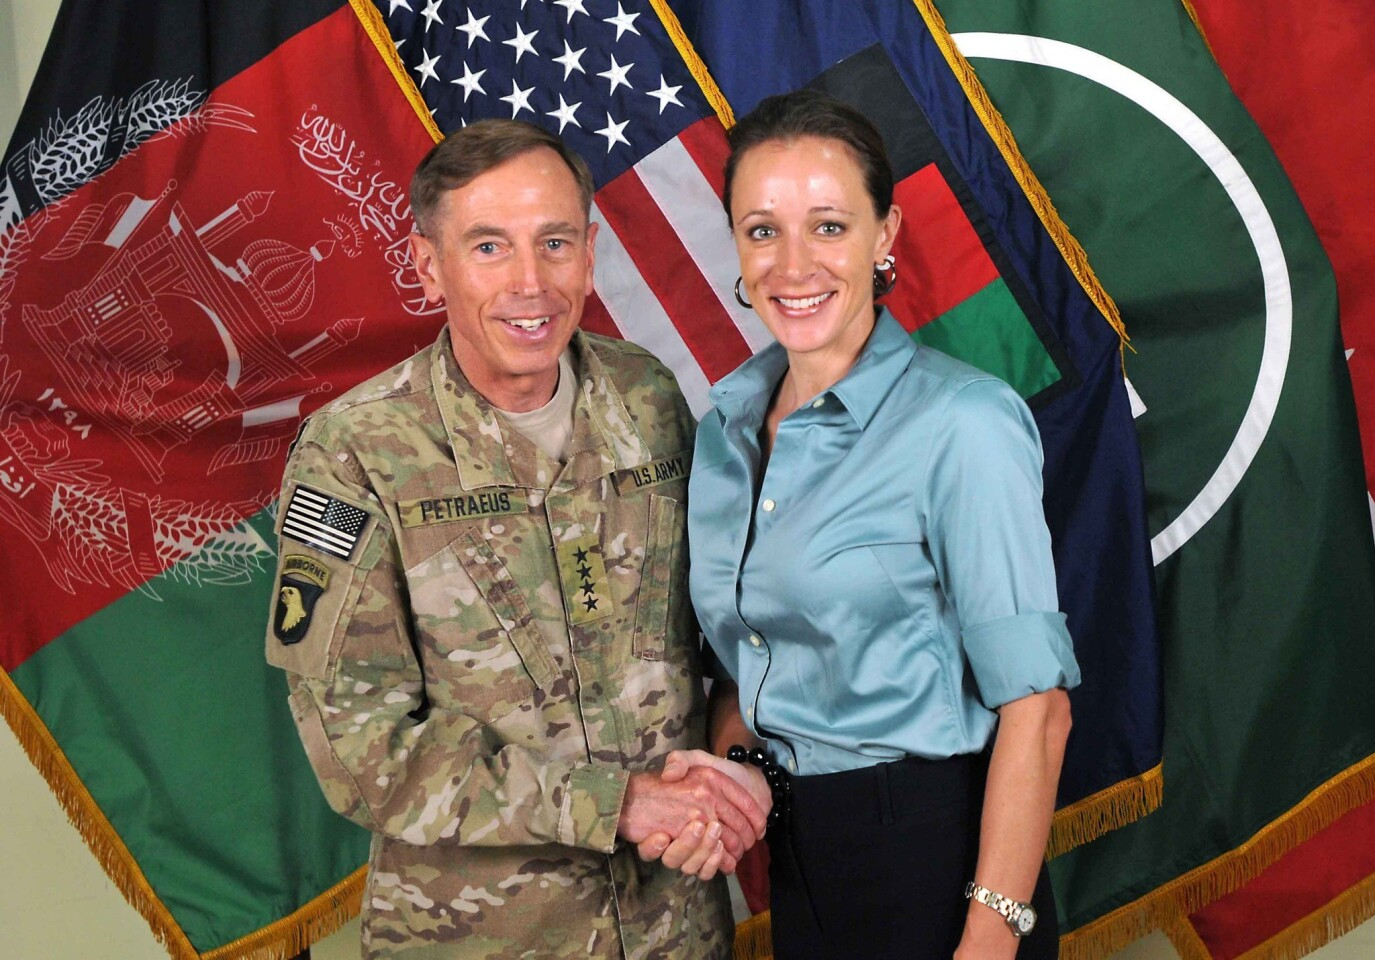 """This July 13, 2011, photo, made available on the International Security Assistance Force's Flickr website, shows Gen. David Petraeus, the former commander of U.S. forces at Afghanistan, shaking hands with Paula Broadwell, co-author of his biography """"All In: The Education of General David Petraeus."""""""